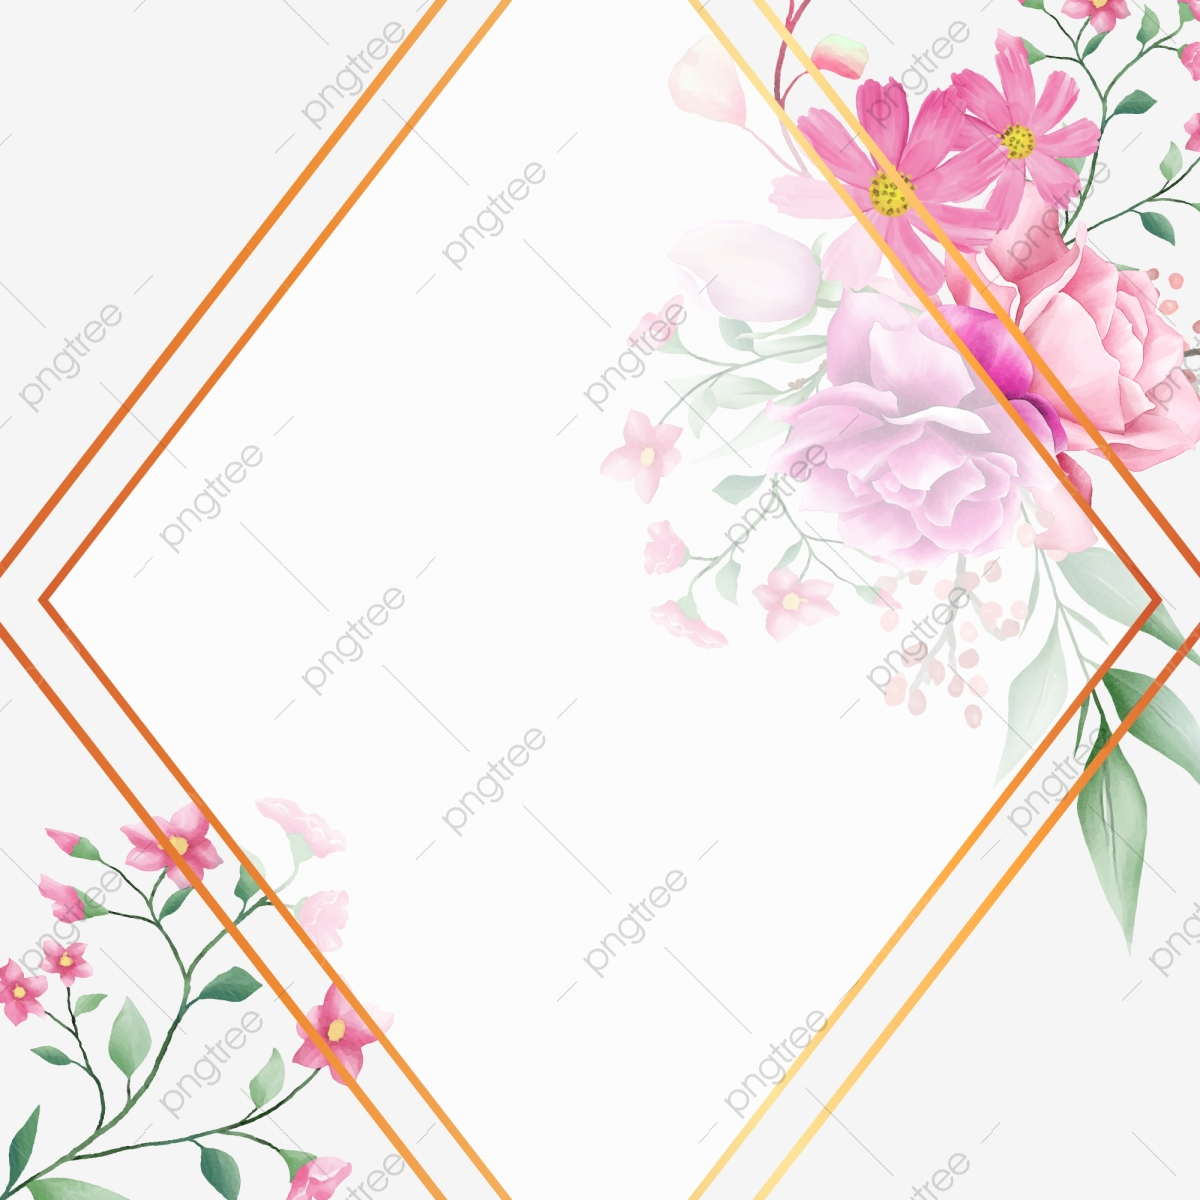 Creative Wedding Frame With Watercolor Floral Background Card